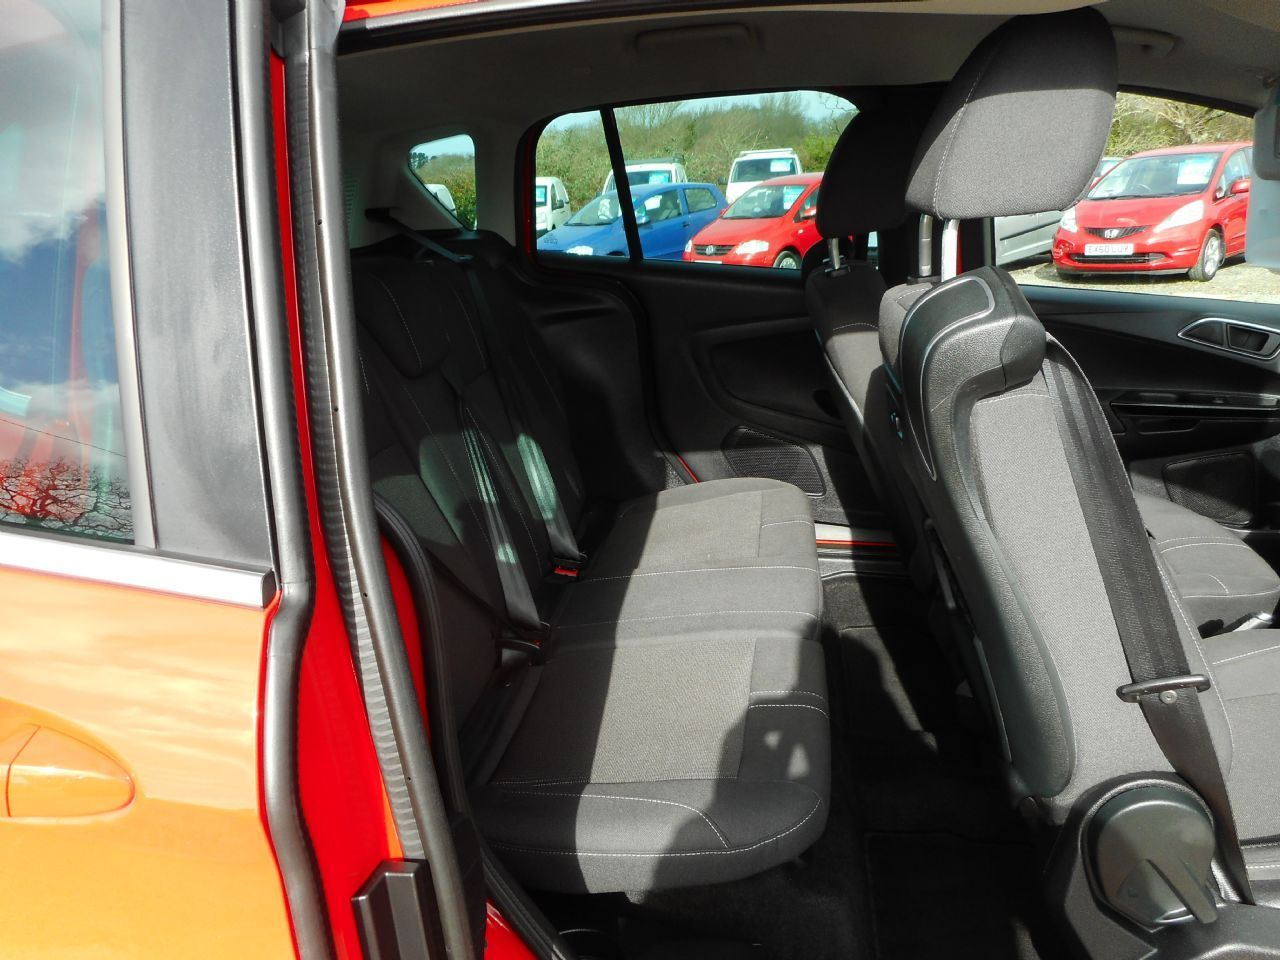 FORD B-MAX 1.4 90PS Zetec (2013) - Picture 6